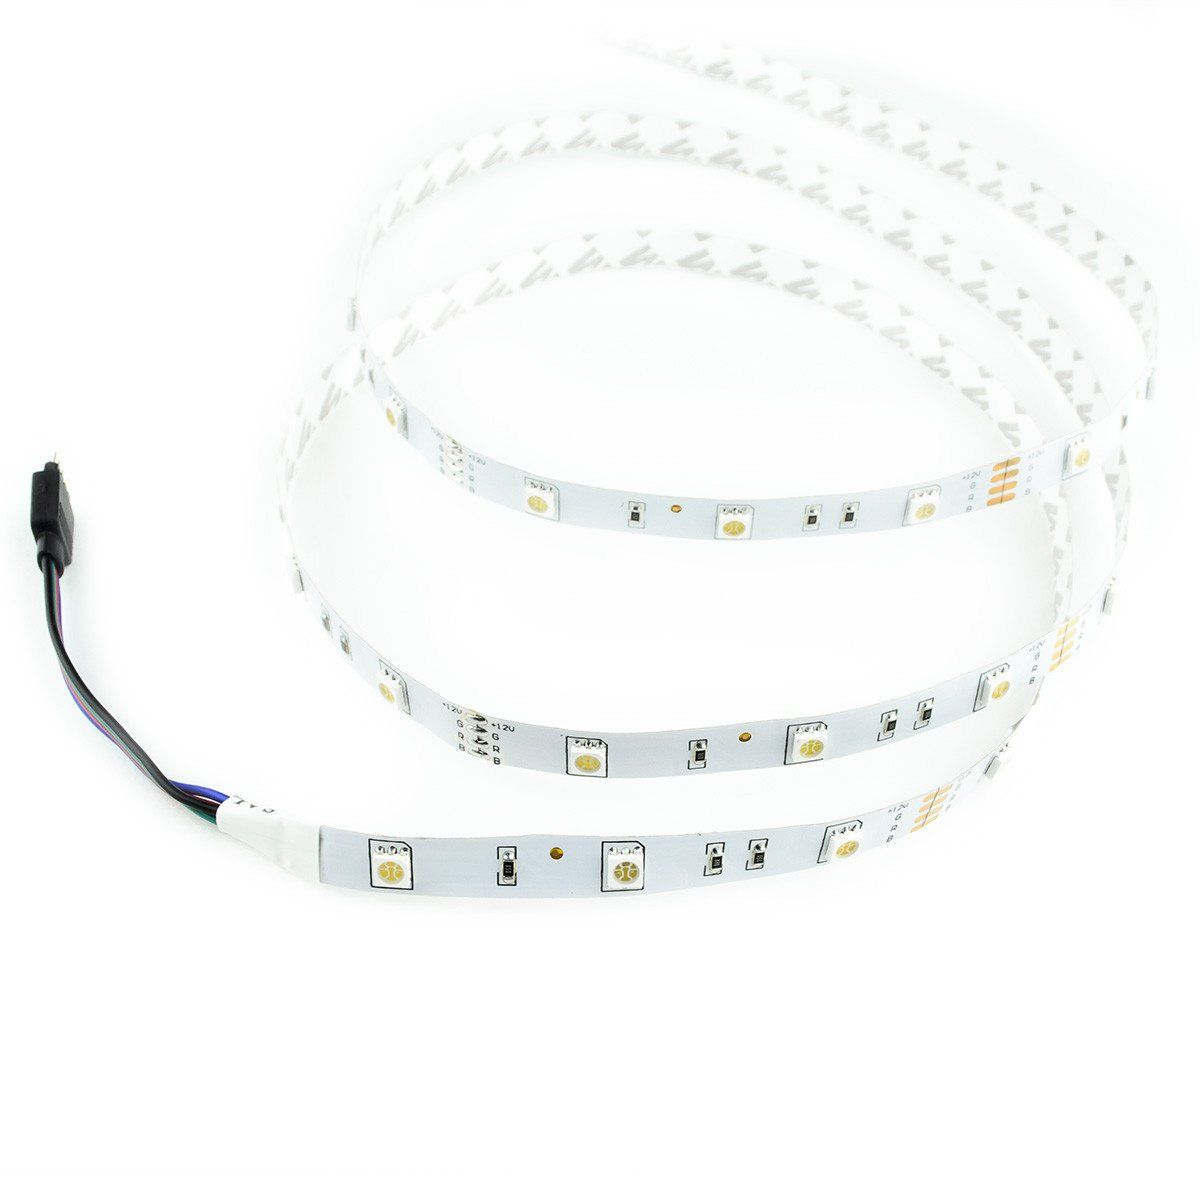 Standard Luma10 RGB Multicolor LED Light Strip Starter Kit - 16.4 Feet - HitLights